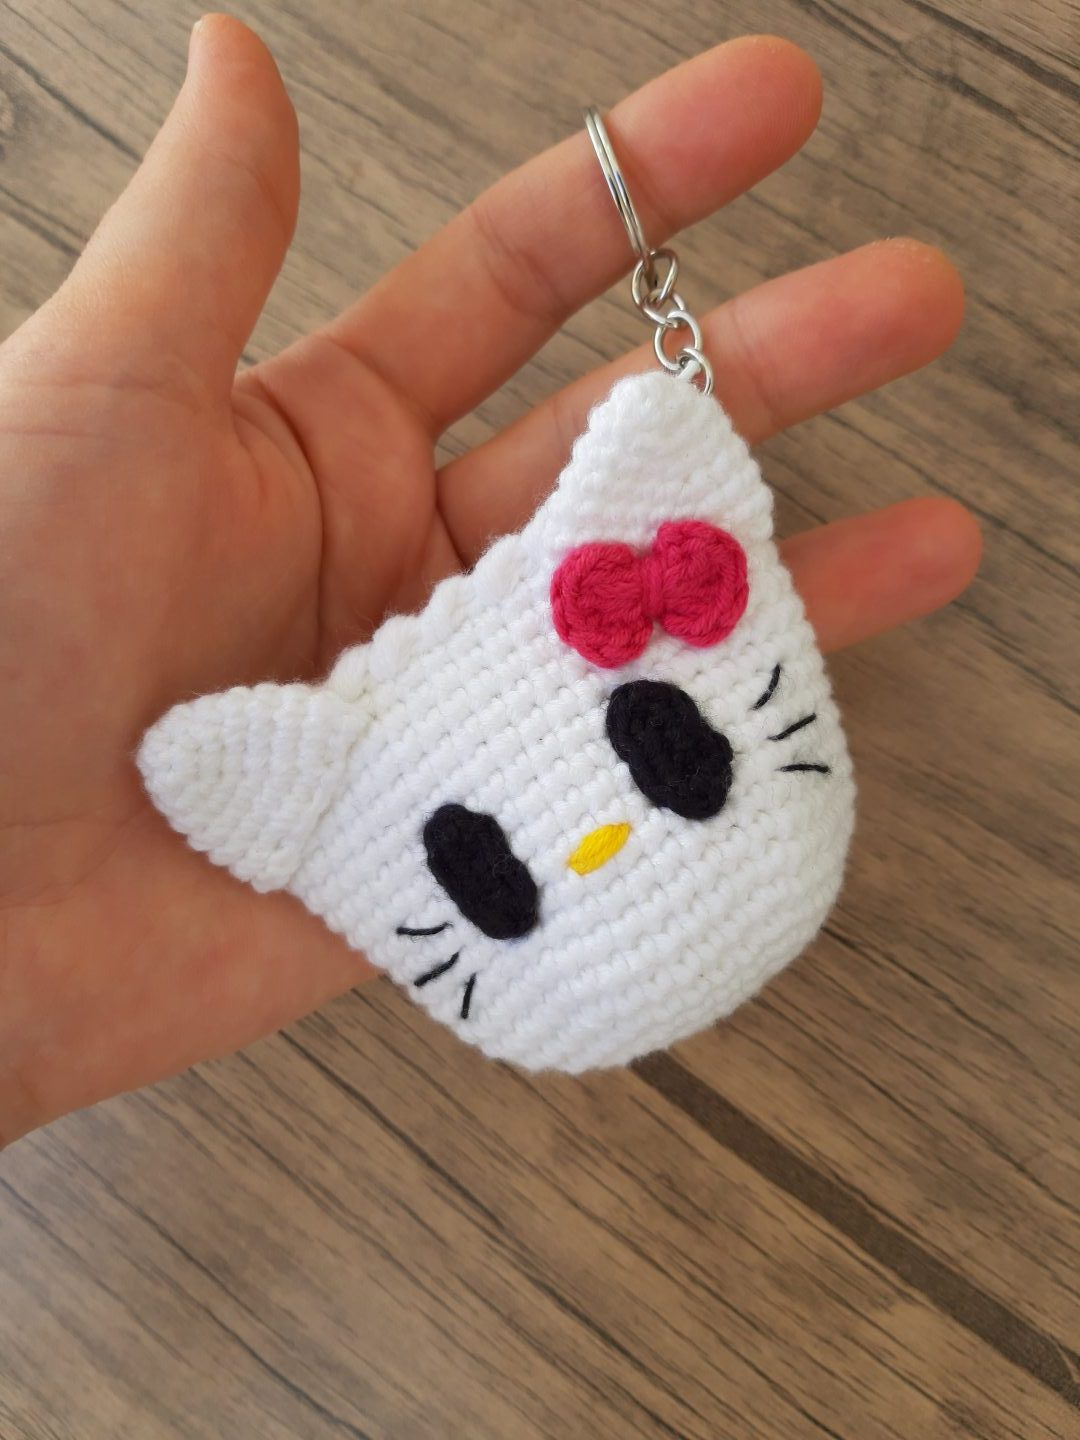 Big Hello Kitty - Free Pattern (Crochet For Children) | Hallo ... | 1440x1080